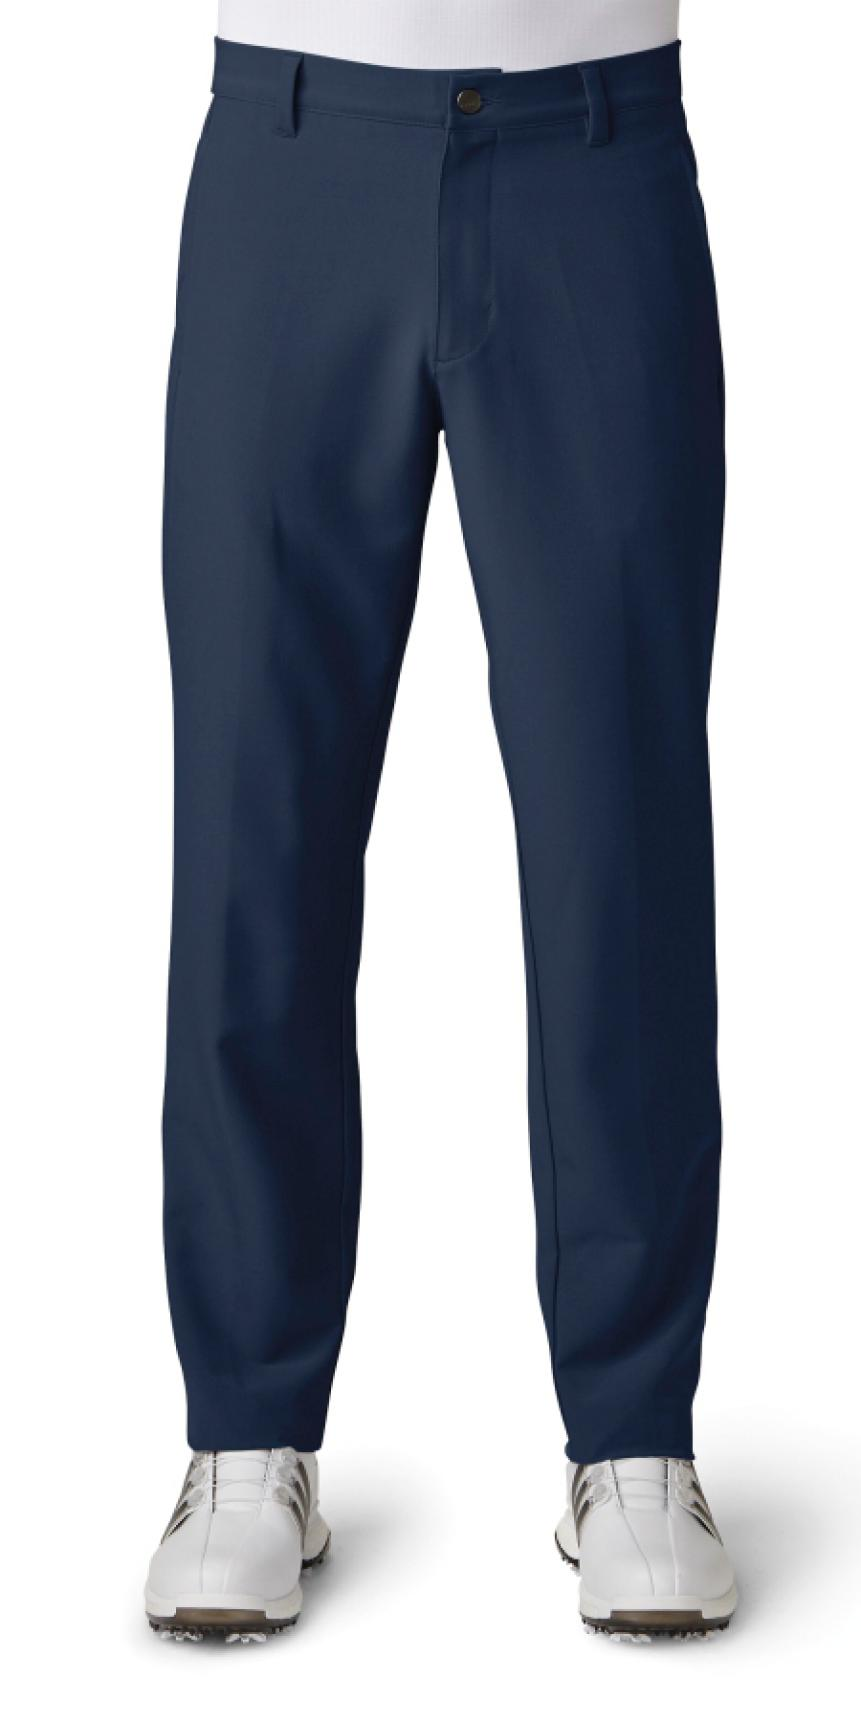 Adidas Golf Ultimate 365 3-Stripes pant ($80)